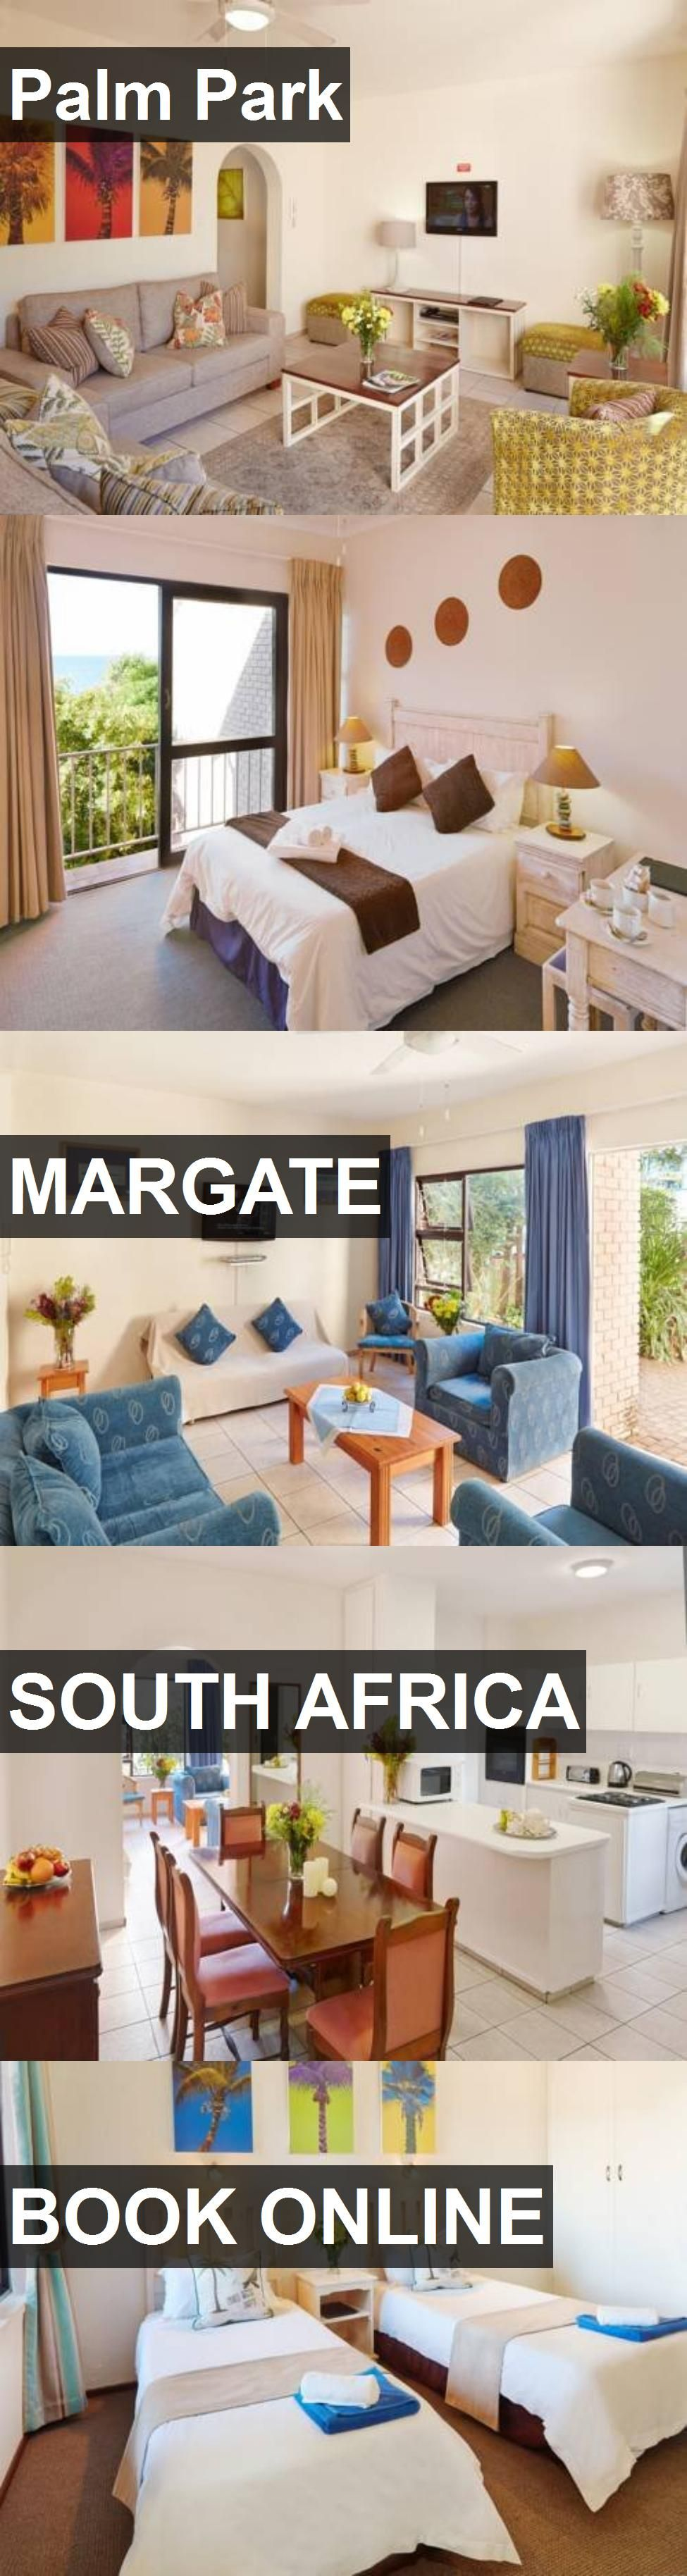 The 25 best Margate south africa ideas on Pinterest